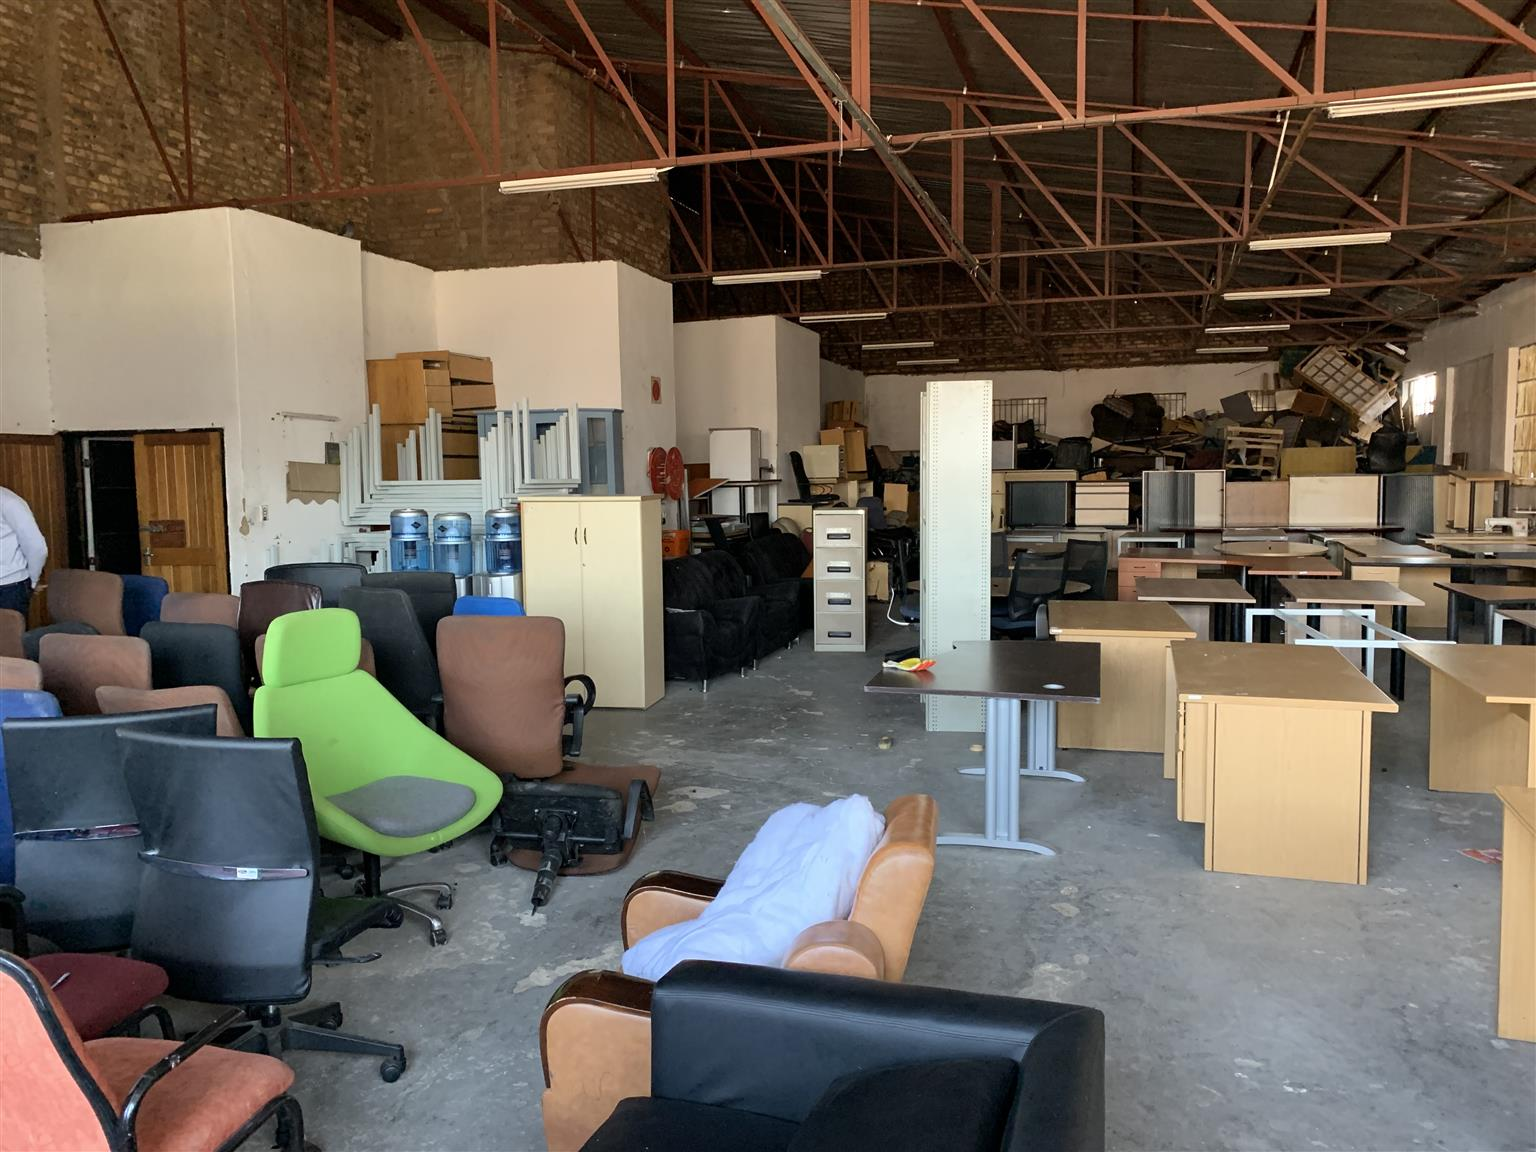 Ware house of office furniture to clear  take Everything, but need warehouse cleared , not pick and choose